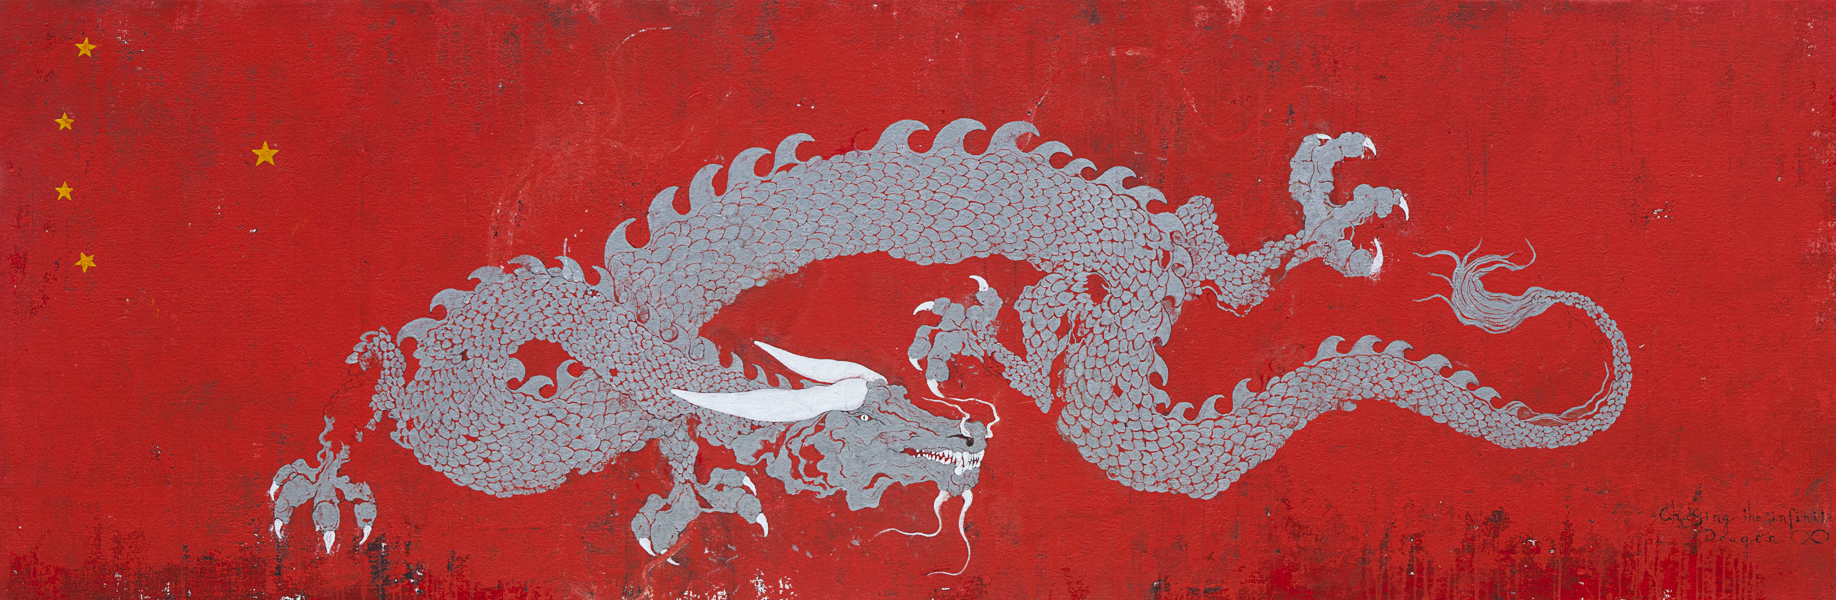 Chasing the infinite dragon I, 2011 100 x 300 cm / 39.4 x 118 inches Pigments / Canvas